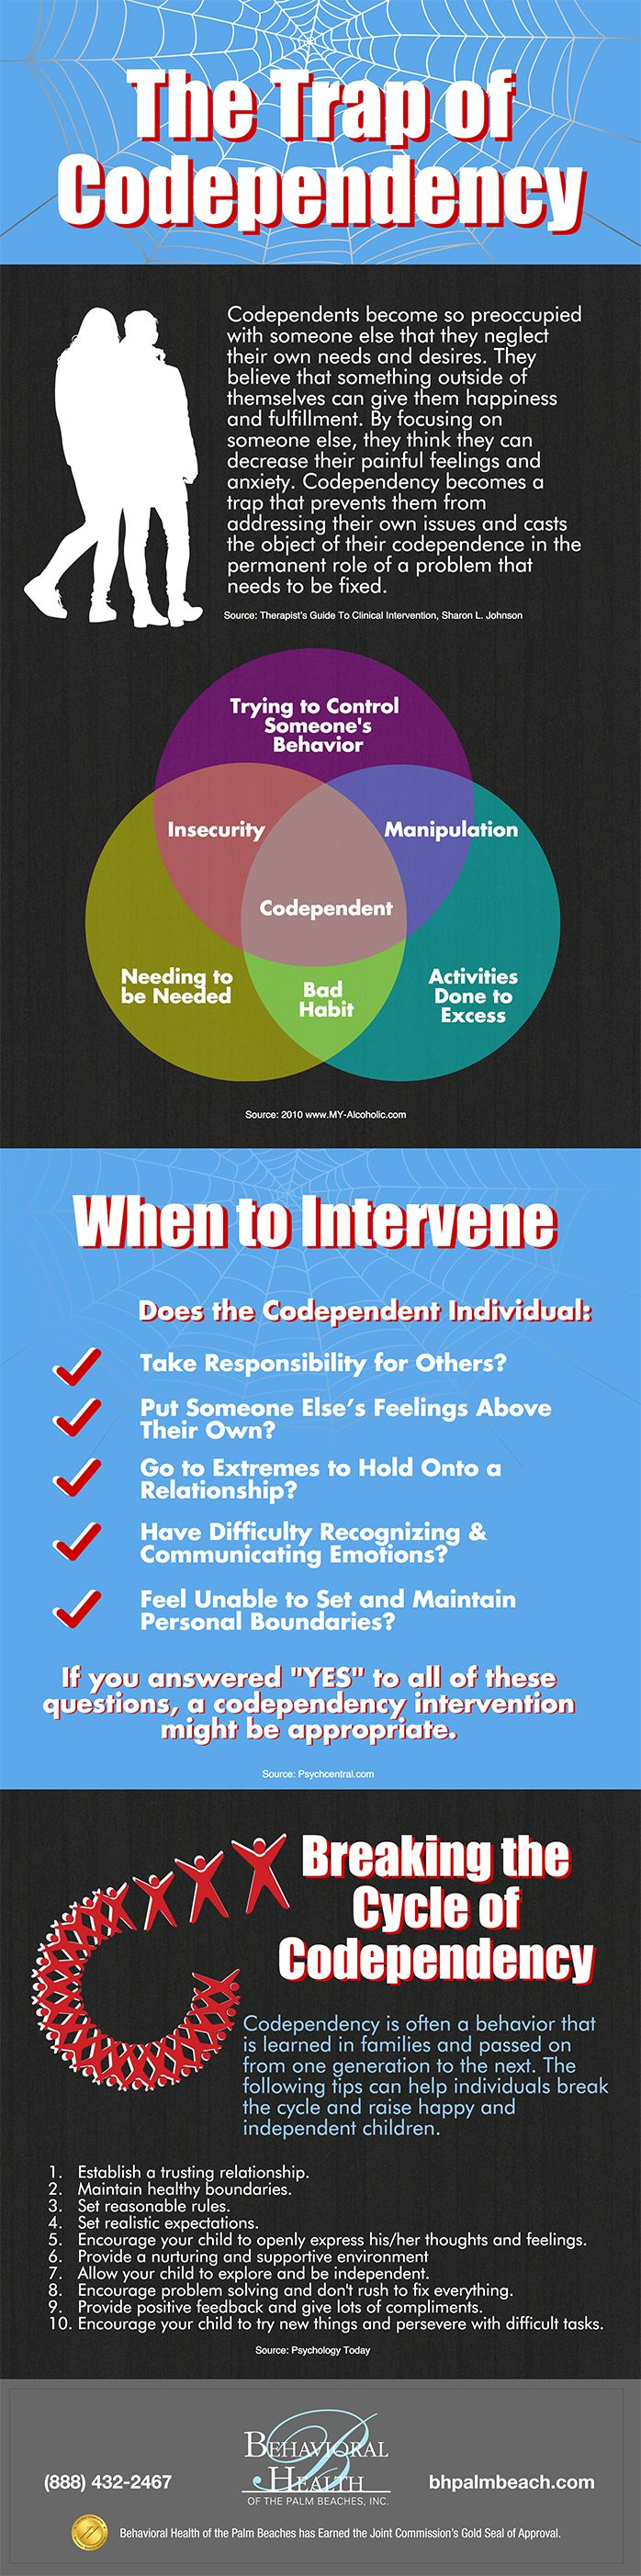 Codependency intervention. There are several alcoholism counseling programs that try to coach families on how they can stay away from enabling the addict and in fact work constructively in getting treatment for the person.